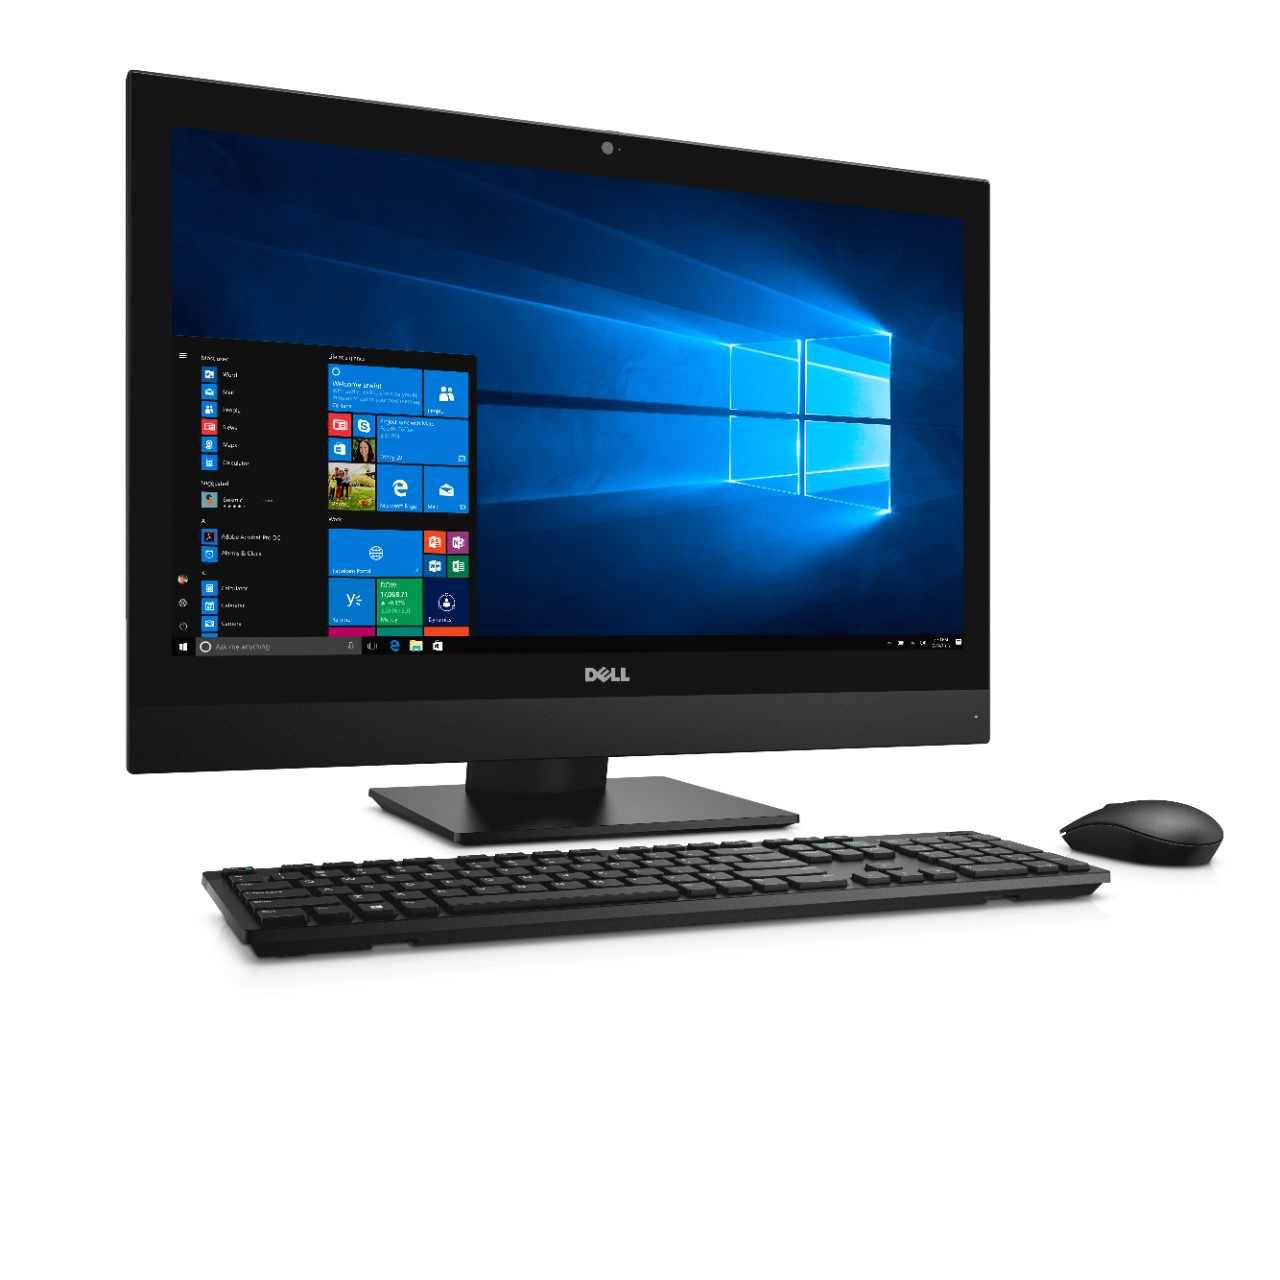 """DELL OptiPlex 7450 3.4GHz i5-7500 23.8"""" 1920 x 1080pixels Touchscreen Black All-in-One PC"""